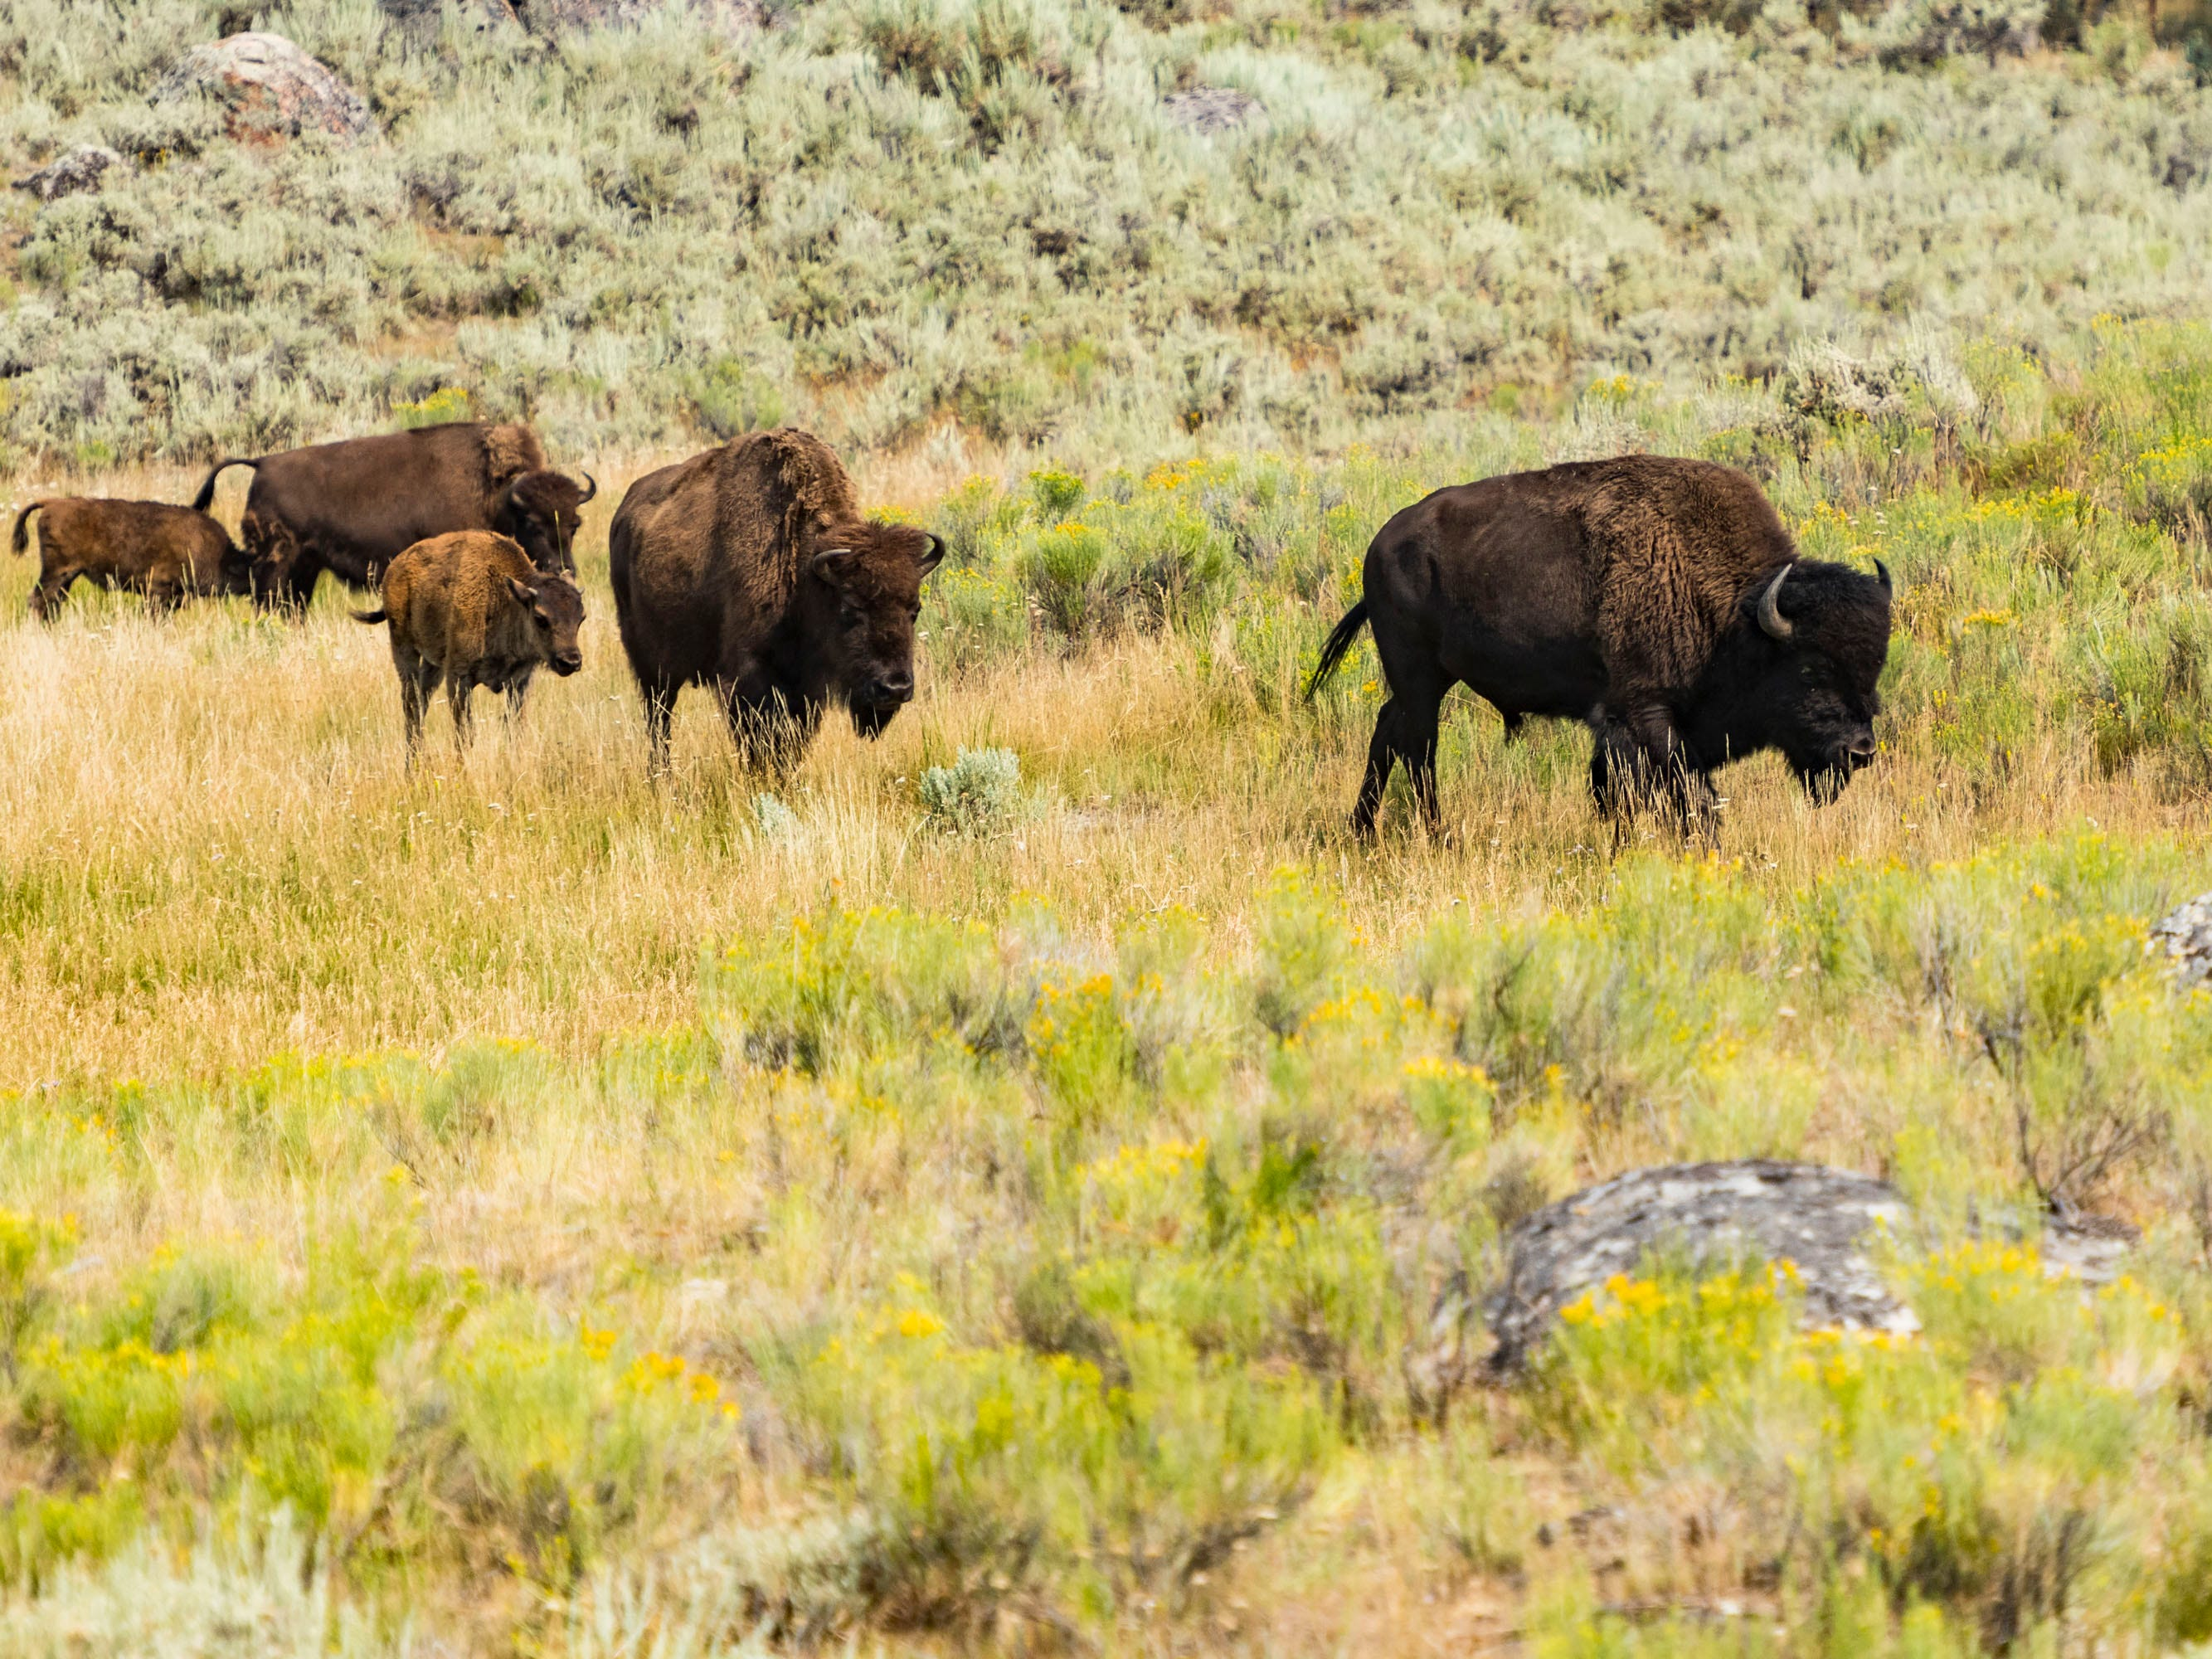 An early morning ride on the tour group's motorcoach through the Lamar Valley affords many sightings of free-roaming bison, elk, antelope and other animals.